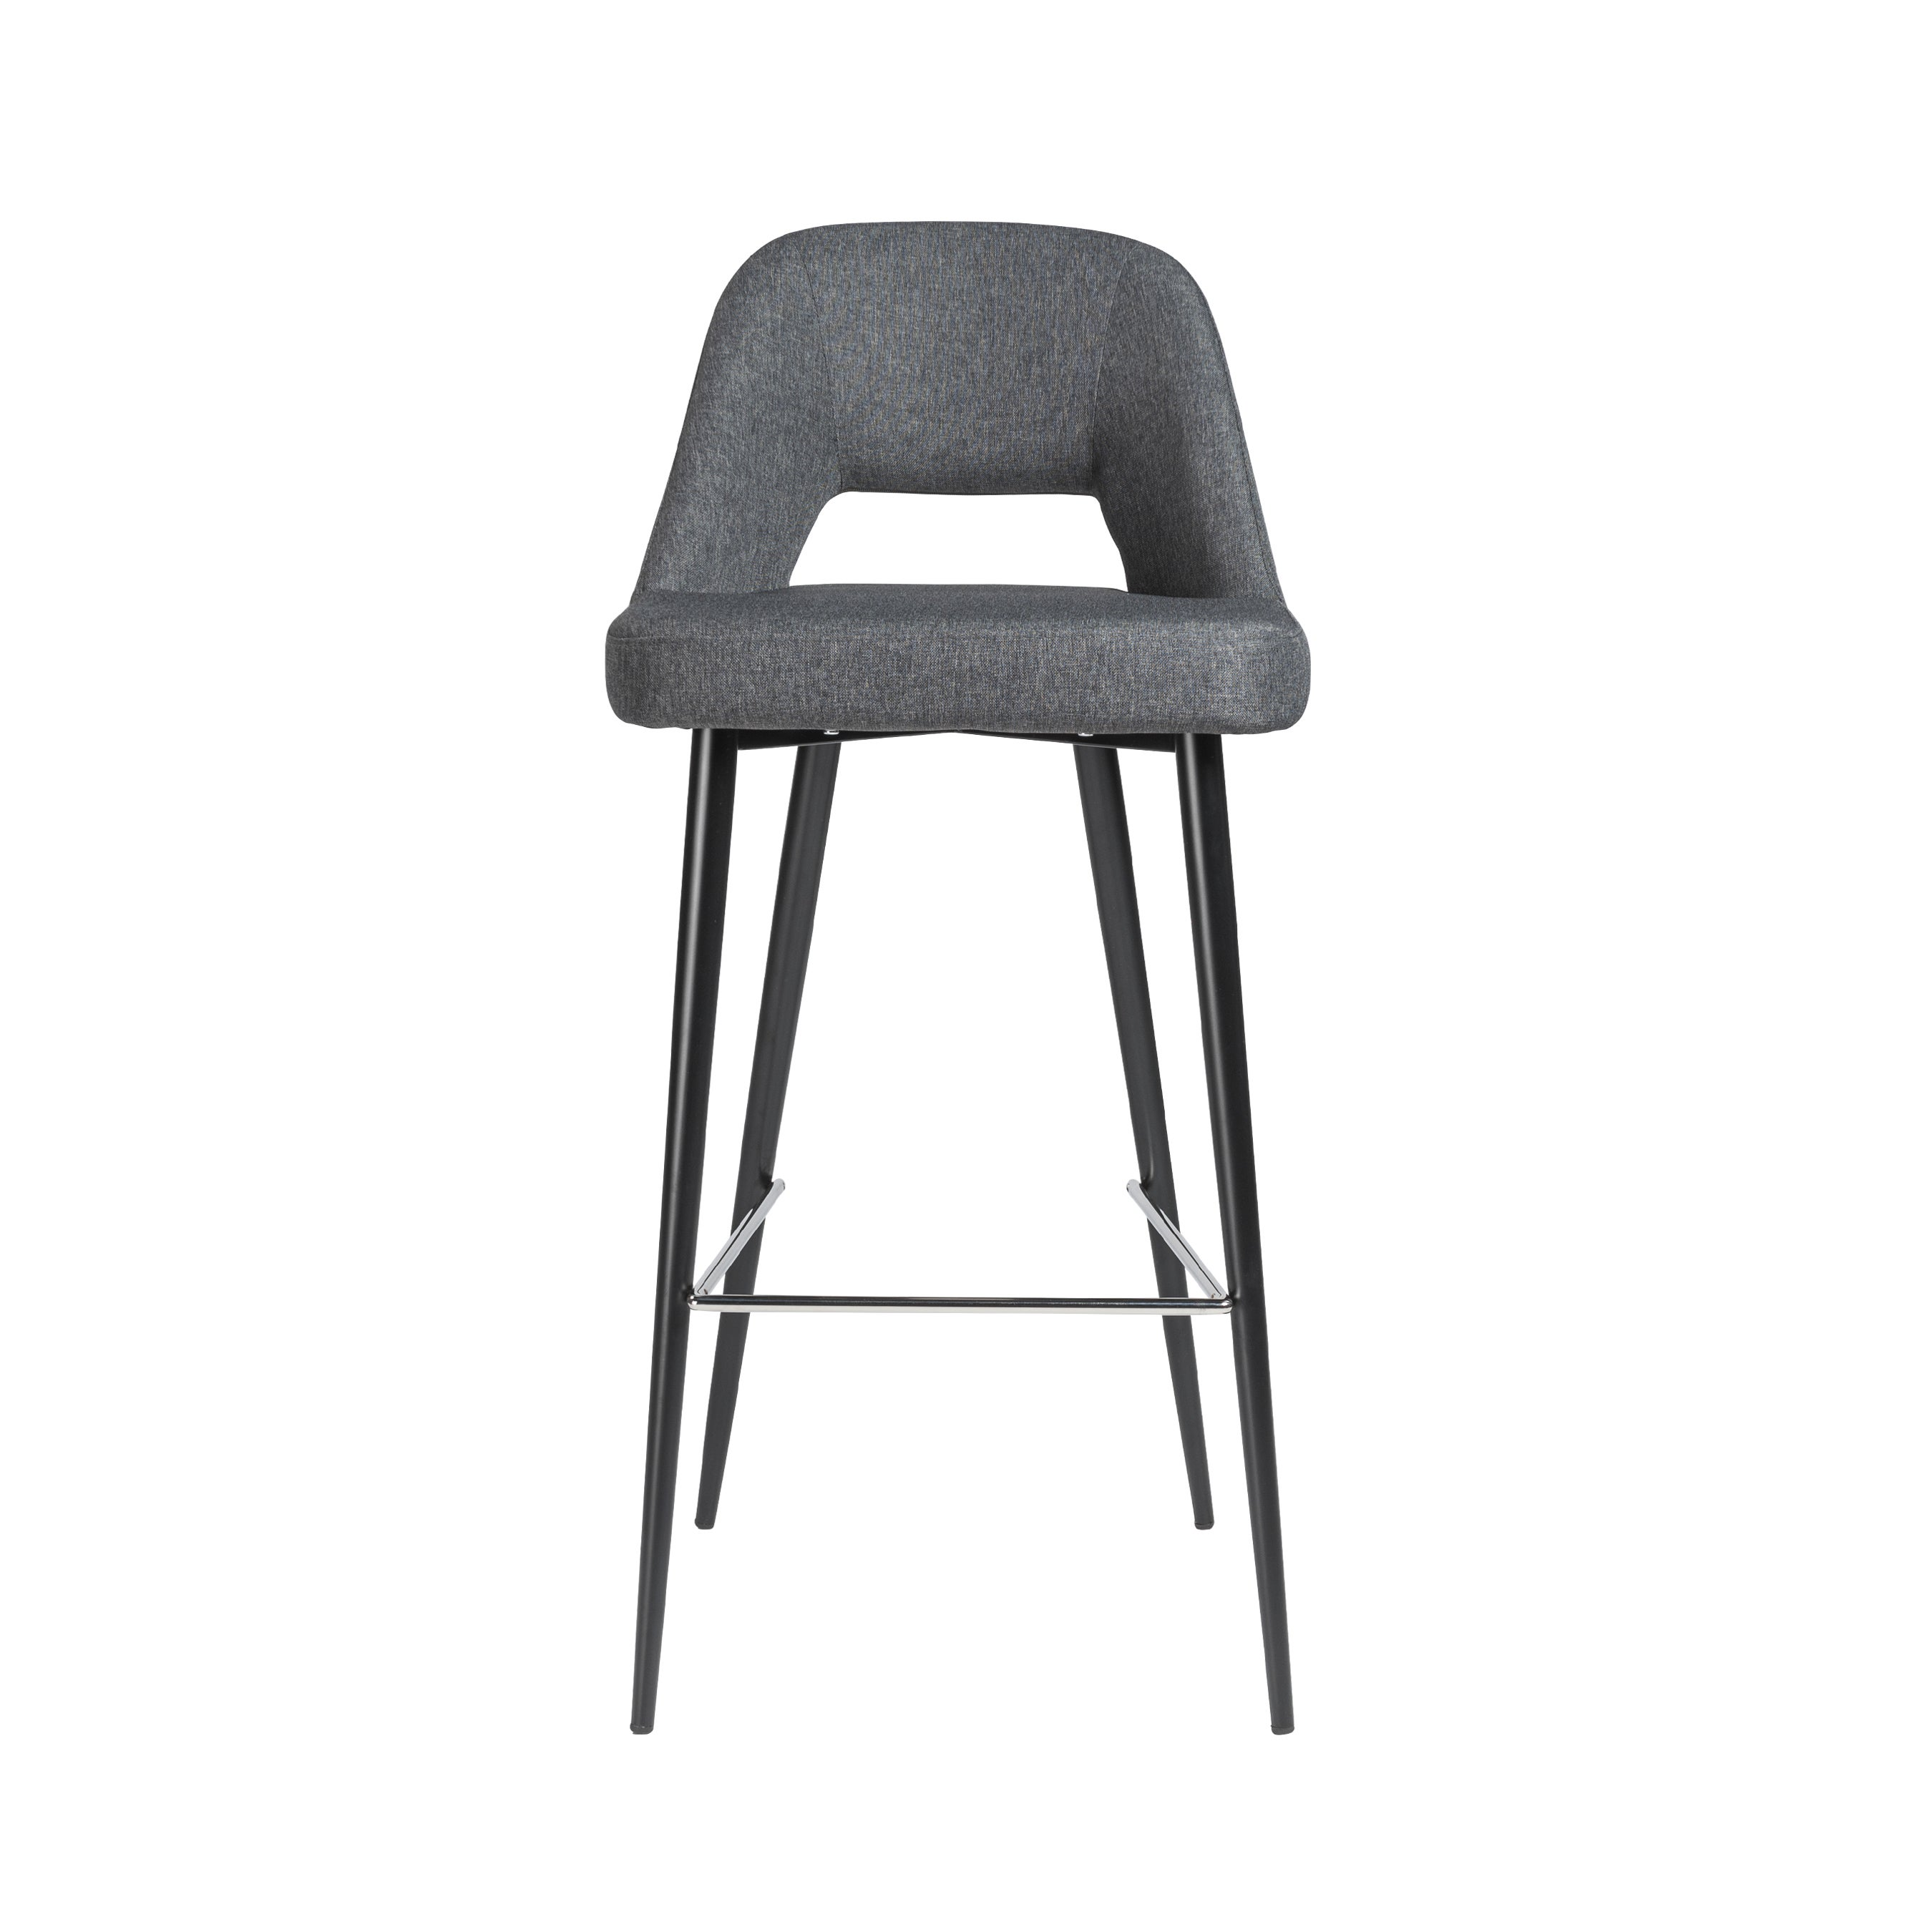 Awesome Blair B Dark Grey Fabric With Black Legs Bar Stool Cjindustries Chair Design For Home Cjindustriesco